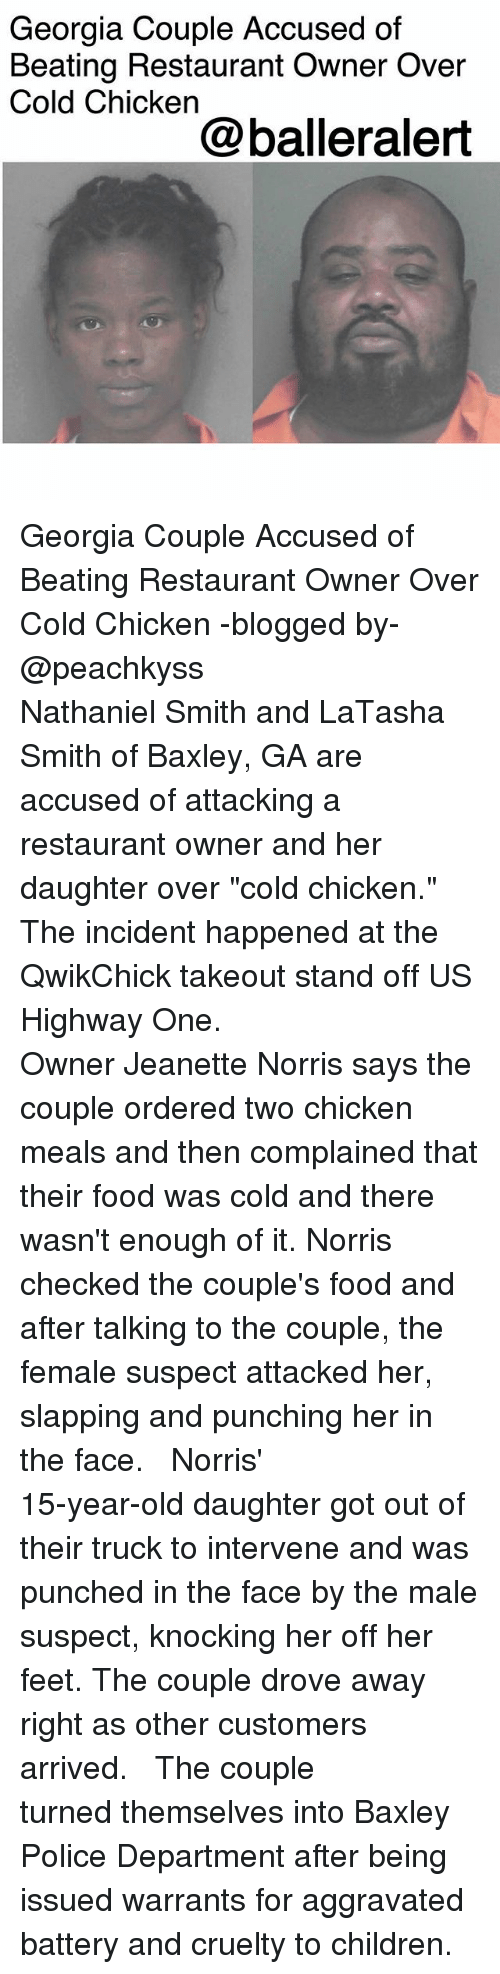 """warrants: Georgia Couple Accused of  Beating Restaurant Owner Over  Cold Chicken  @balleralert Georgia Couple Accused of Beating Restaurant Owner Over Cold Chicken -blogged by- @peachkyss ⠀⠀⠀⠀⠀⠀⠀⠀⠀ ⠀⠀⠀⠀⠀⠀⠀⠀⠀ Nathaniel Smith and LaTasha Smith of Baxley, GA are accused of attacking a restaurant owner and her daughter over """"cold chicken."""" The incident happened at the QwikChick takeout stand off US Highway One. ⠀⠀⠀⠀⠀⠀⠀⠀⠀ ⠀⠀⠀⠀⠀⠀⠀⠀⠀ Owner Jeanette Norris says the couple ordered two chicken meals and then complained that their food was cold and there wasn't enough of it. Norris checked the couple's food and after talking to the couple, the female suspect attacked her, slapping and punching her in the face. ⠀⠀⠀⠀⠀⠀⠀⠀⠀ ⠀⠀⠀⠀⠀⠀⠀⠀⠀ Norris' 15-year-old daughter got out of their truck to intervene and was punched in the face by the male suspect, knocking her off her feet. The couple drove away right as other customers arrived. ⠀⠀⠀⠀⠀⠀⠀⠀⠀ ⠀⠀⠀⠀⠀⠀⠀⠀⠀ The couple turned themselves into Baxley Police Department after being issued warrants for aggravated battery and cruelty to children."""